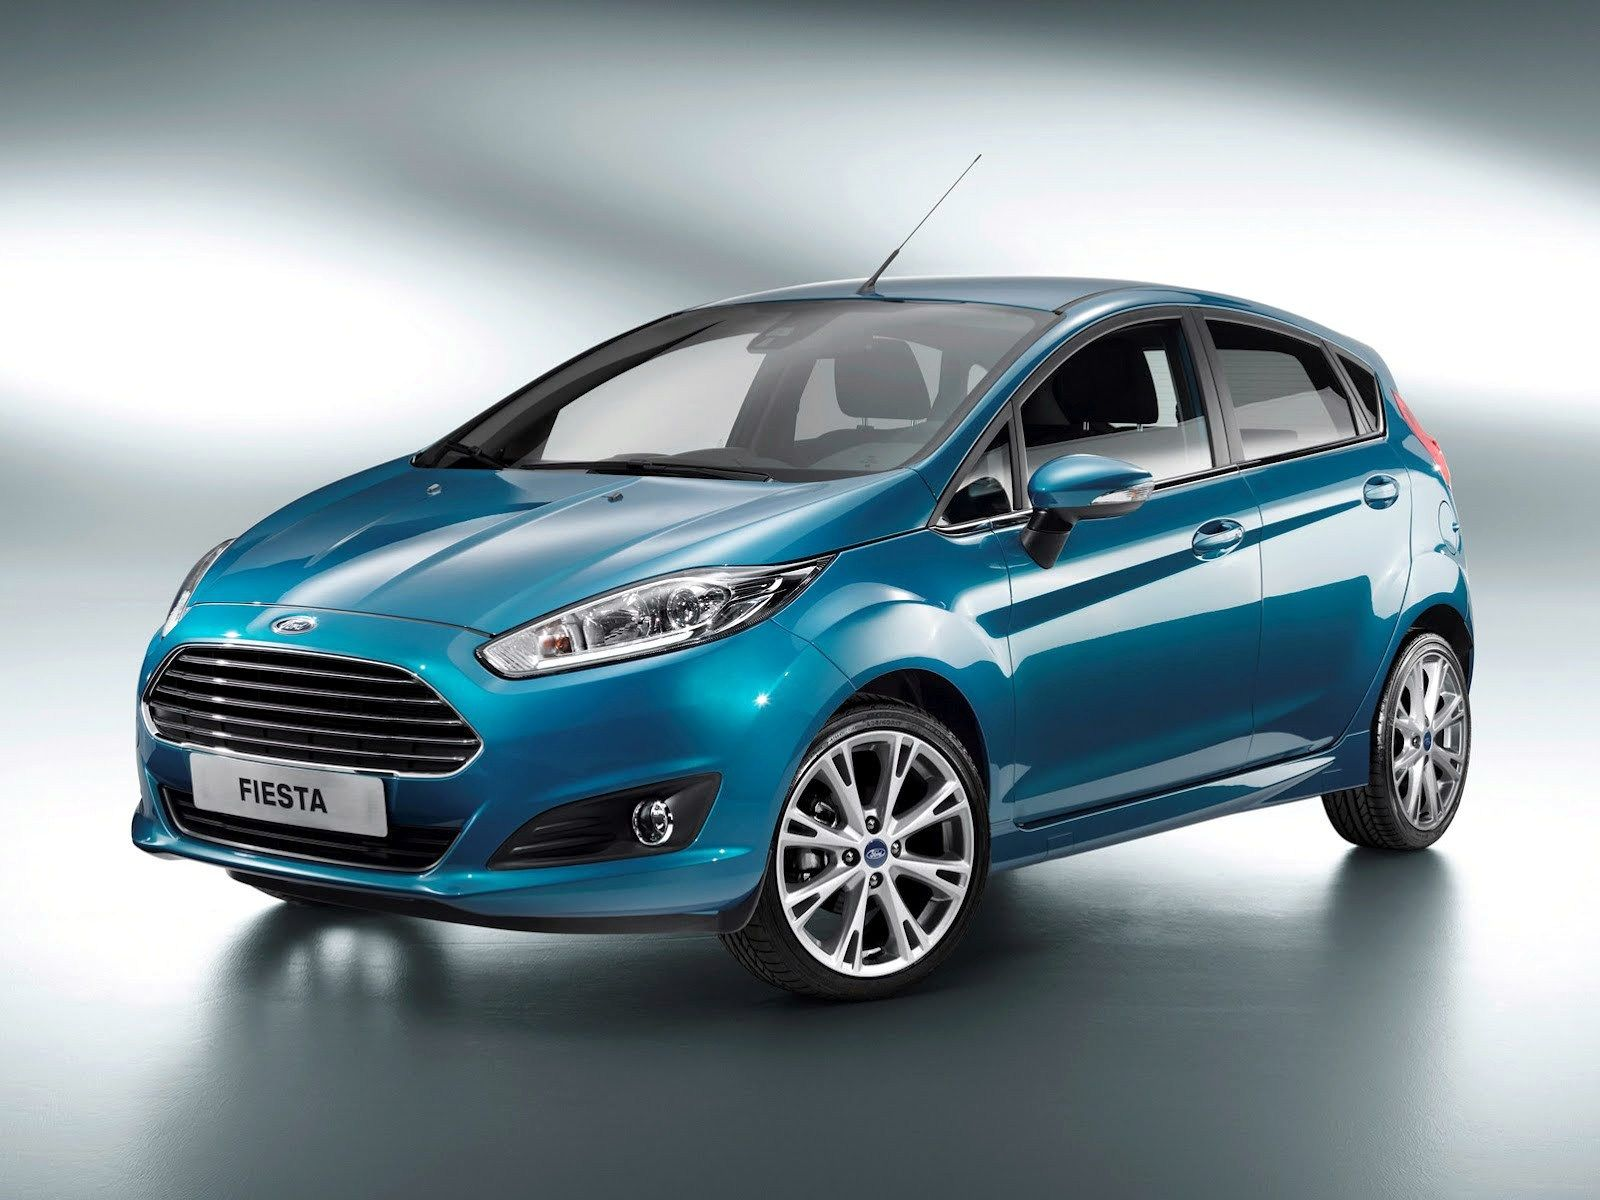 2018 Ford Fiesta Model Concept Design Price Ford Fiesta